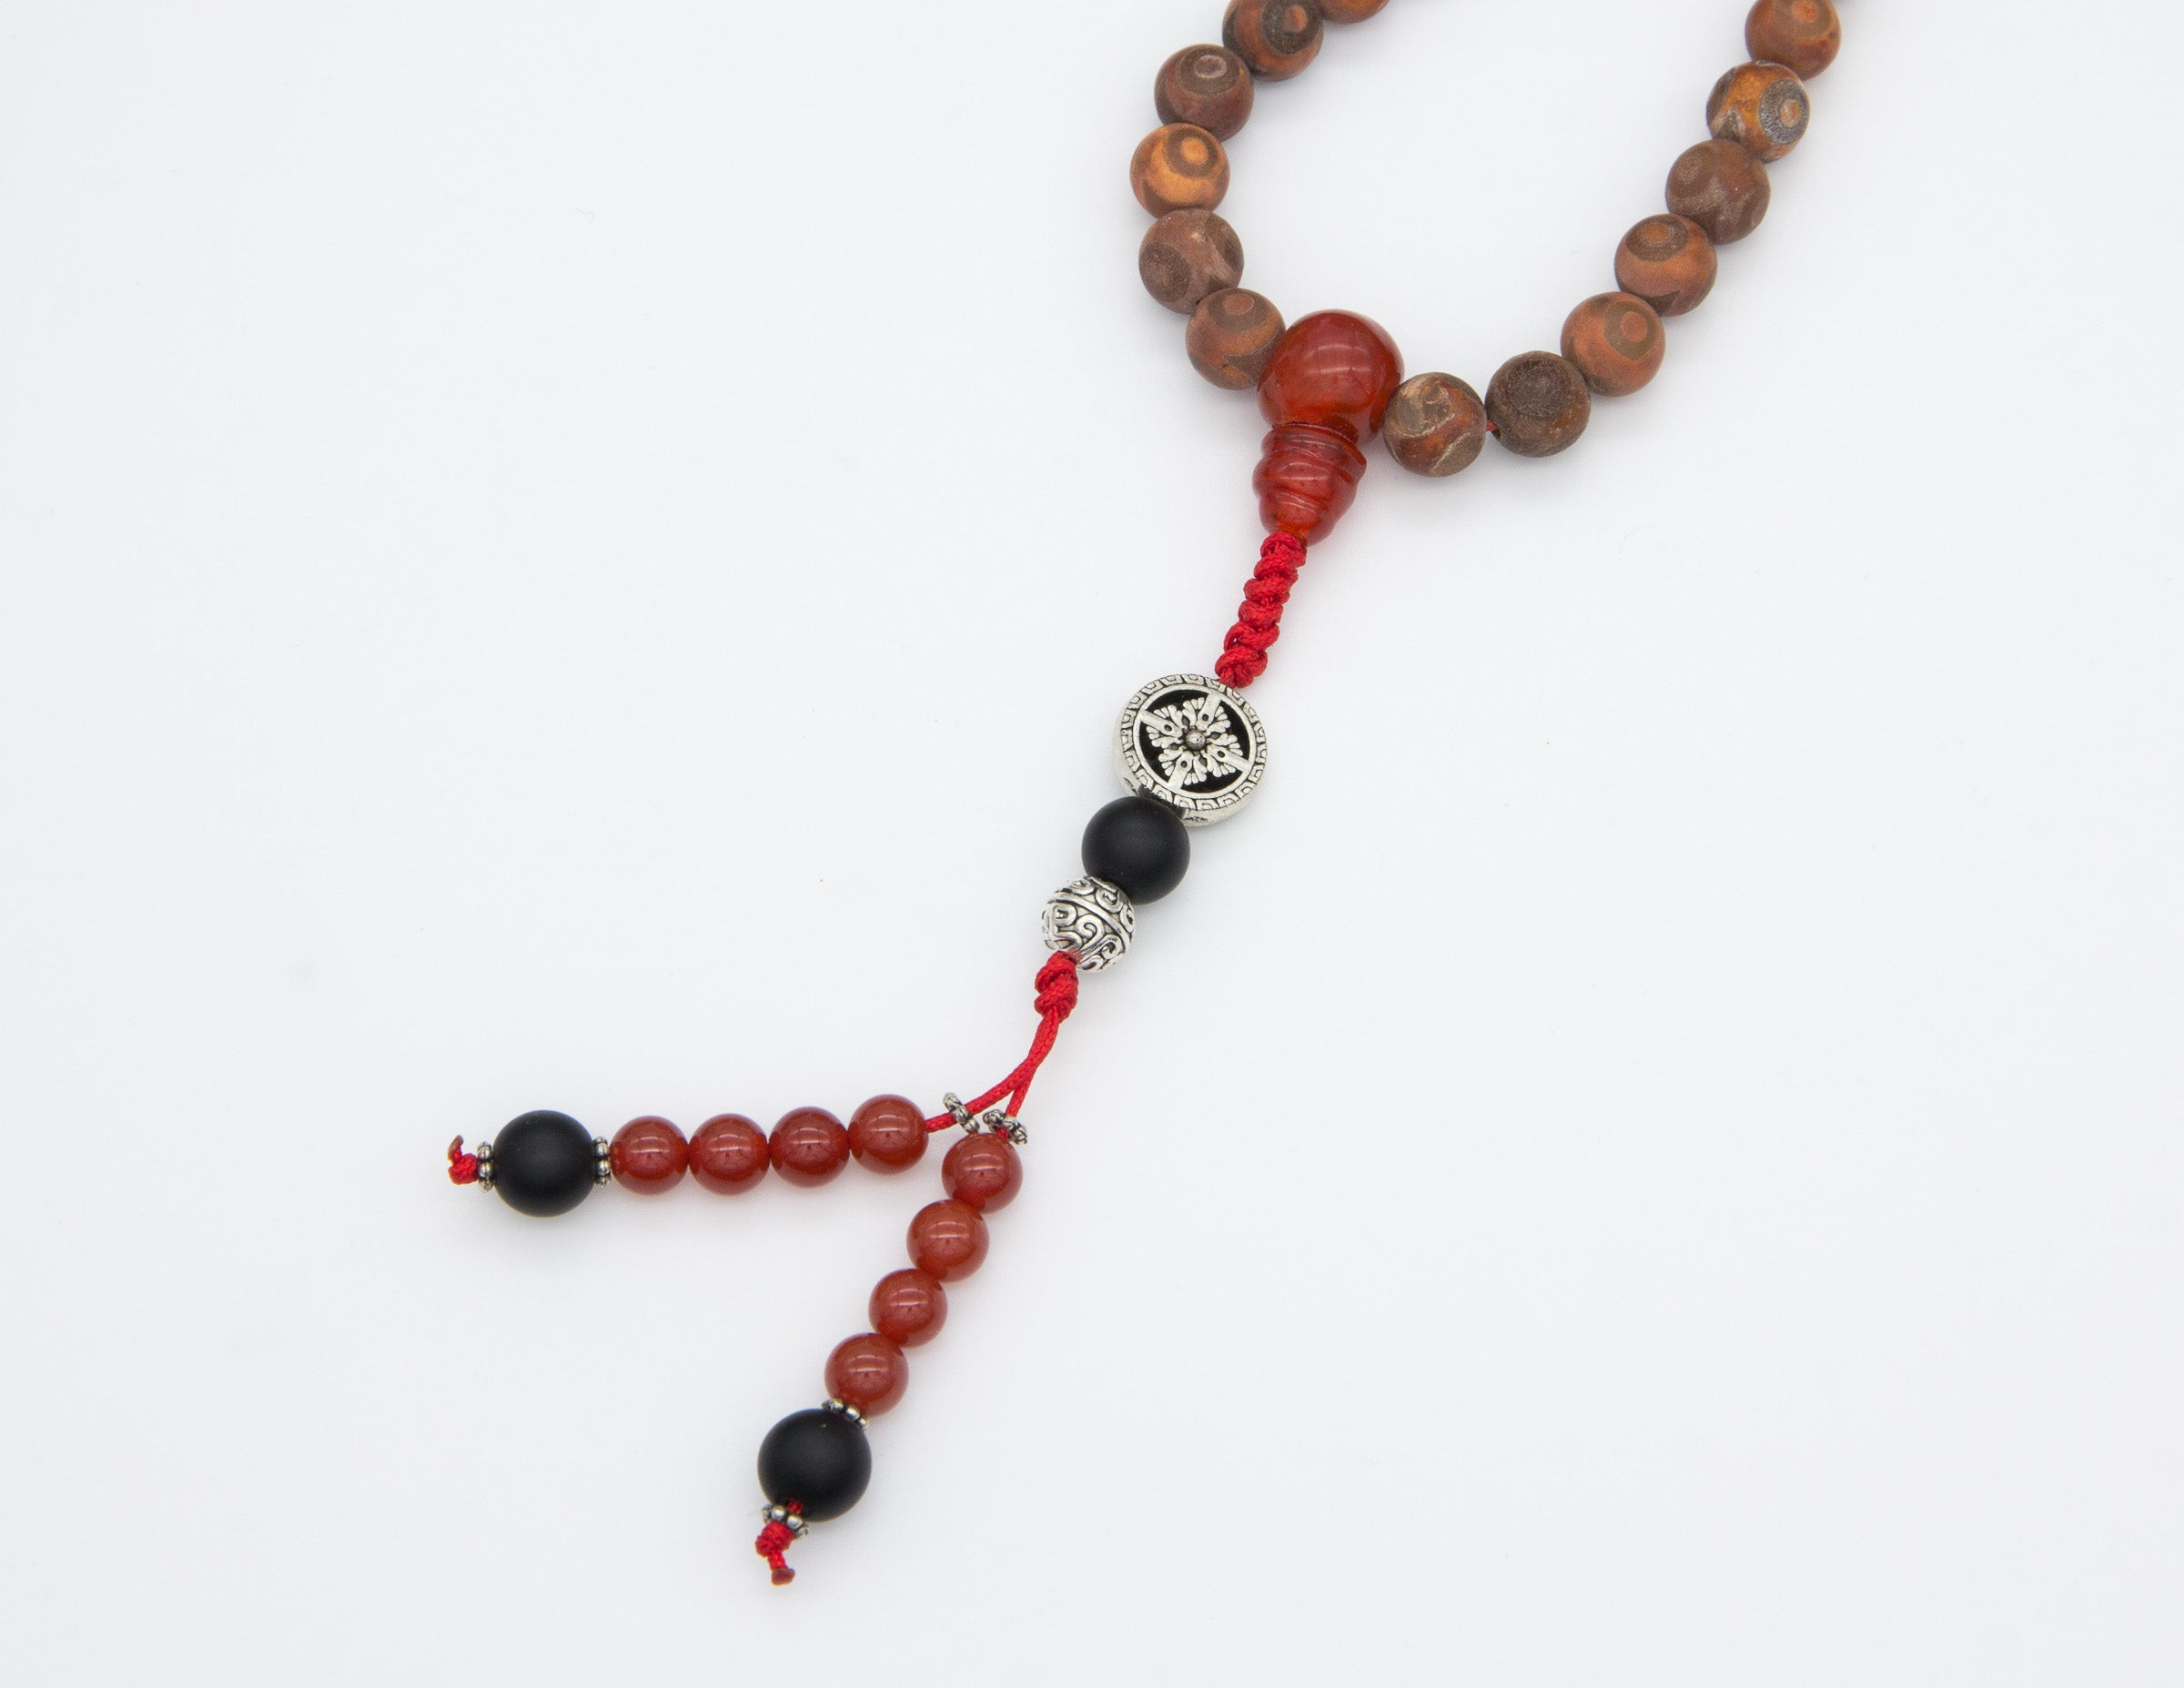 Natural Banded 'Agate Wood' with Spacer Beads